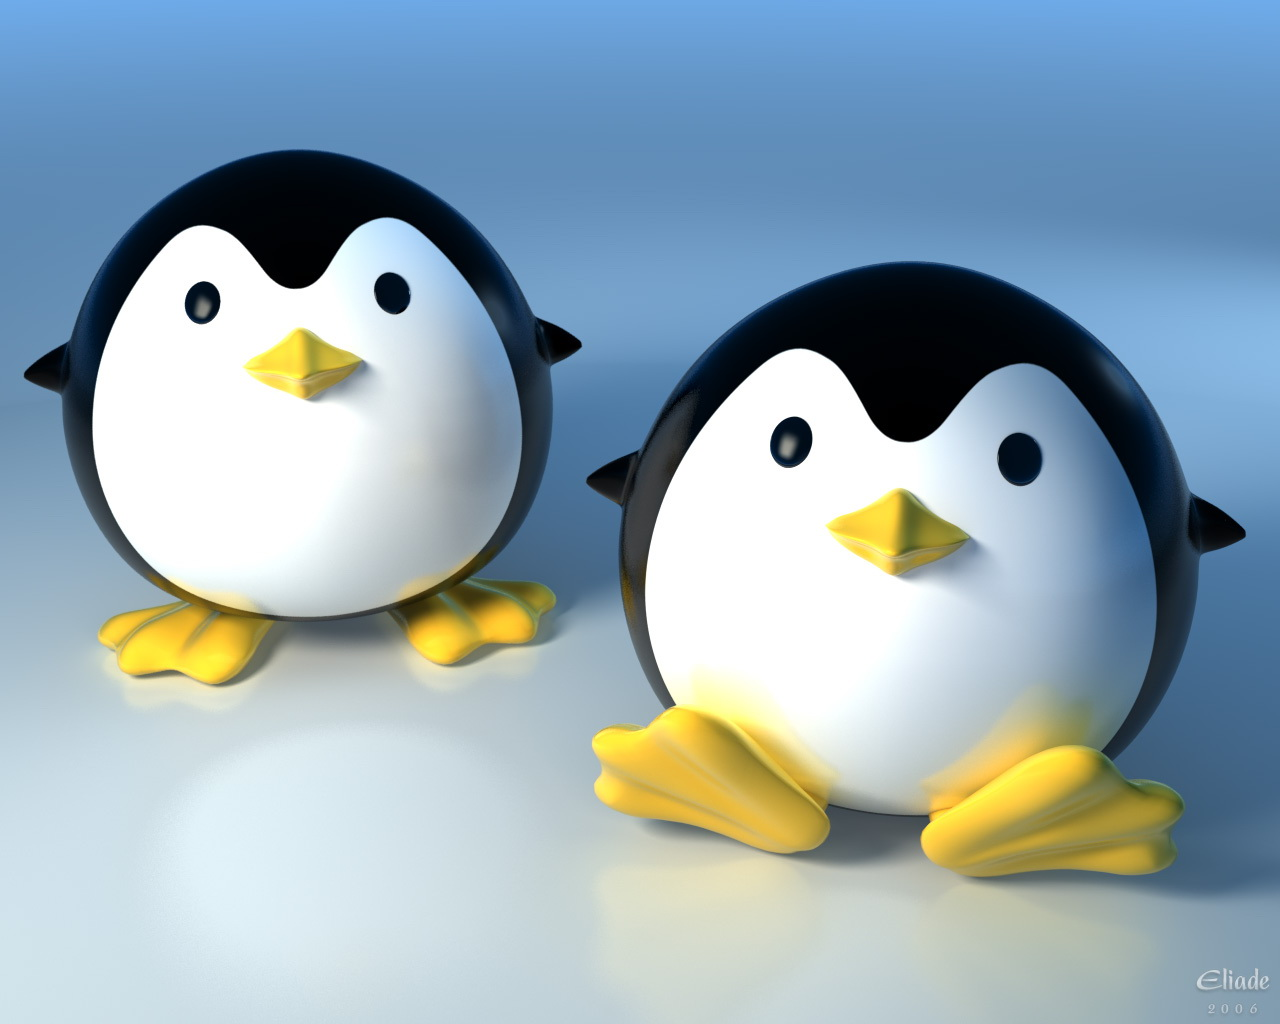 Cute 3D Penguins Wallpapers   HD Wallpapers 293 1280x1024